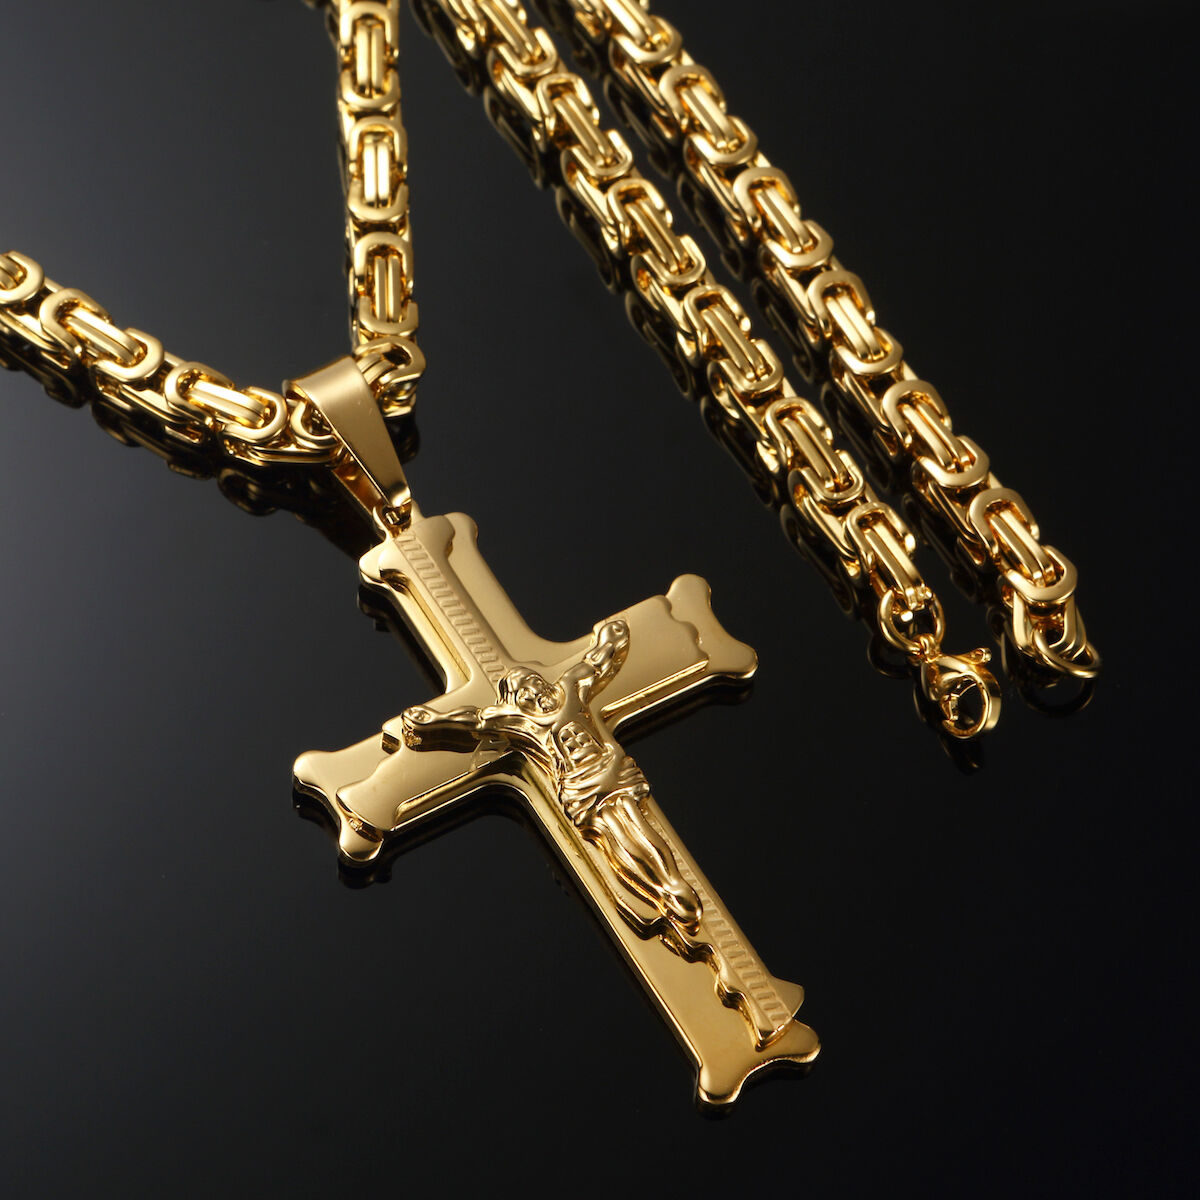 24 Quot Mens 18k Gold Stainless Steel Chain Necklace Jesus